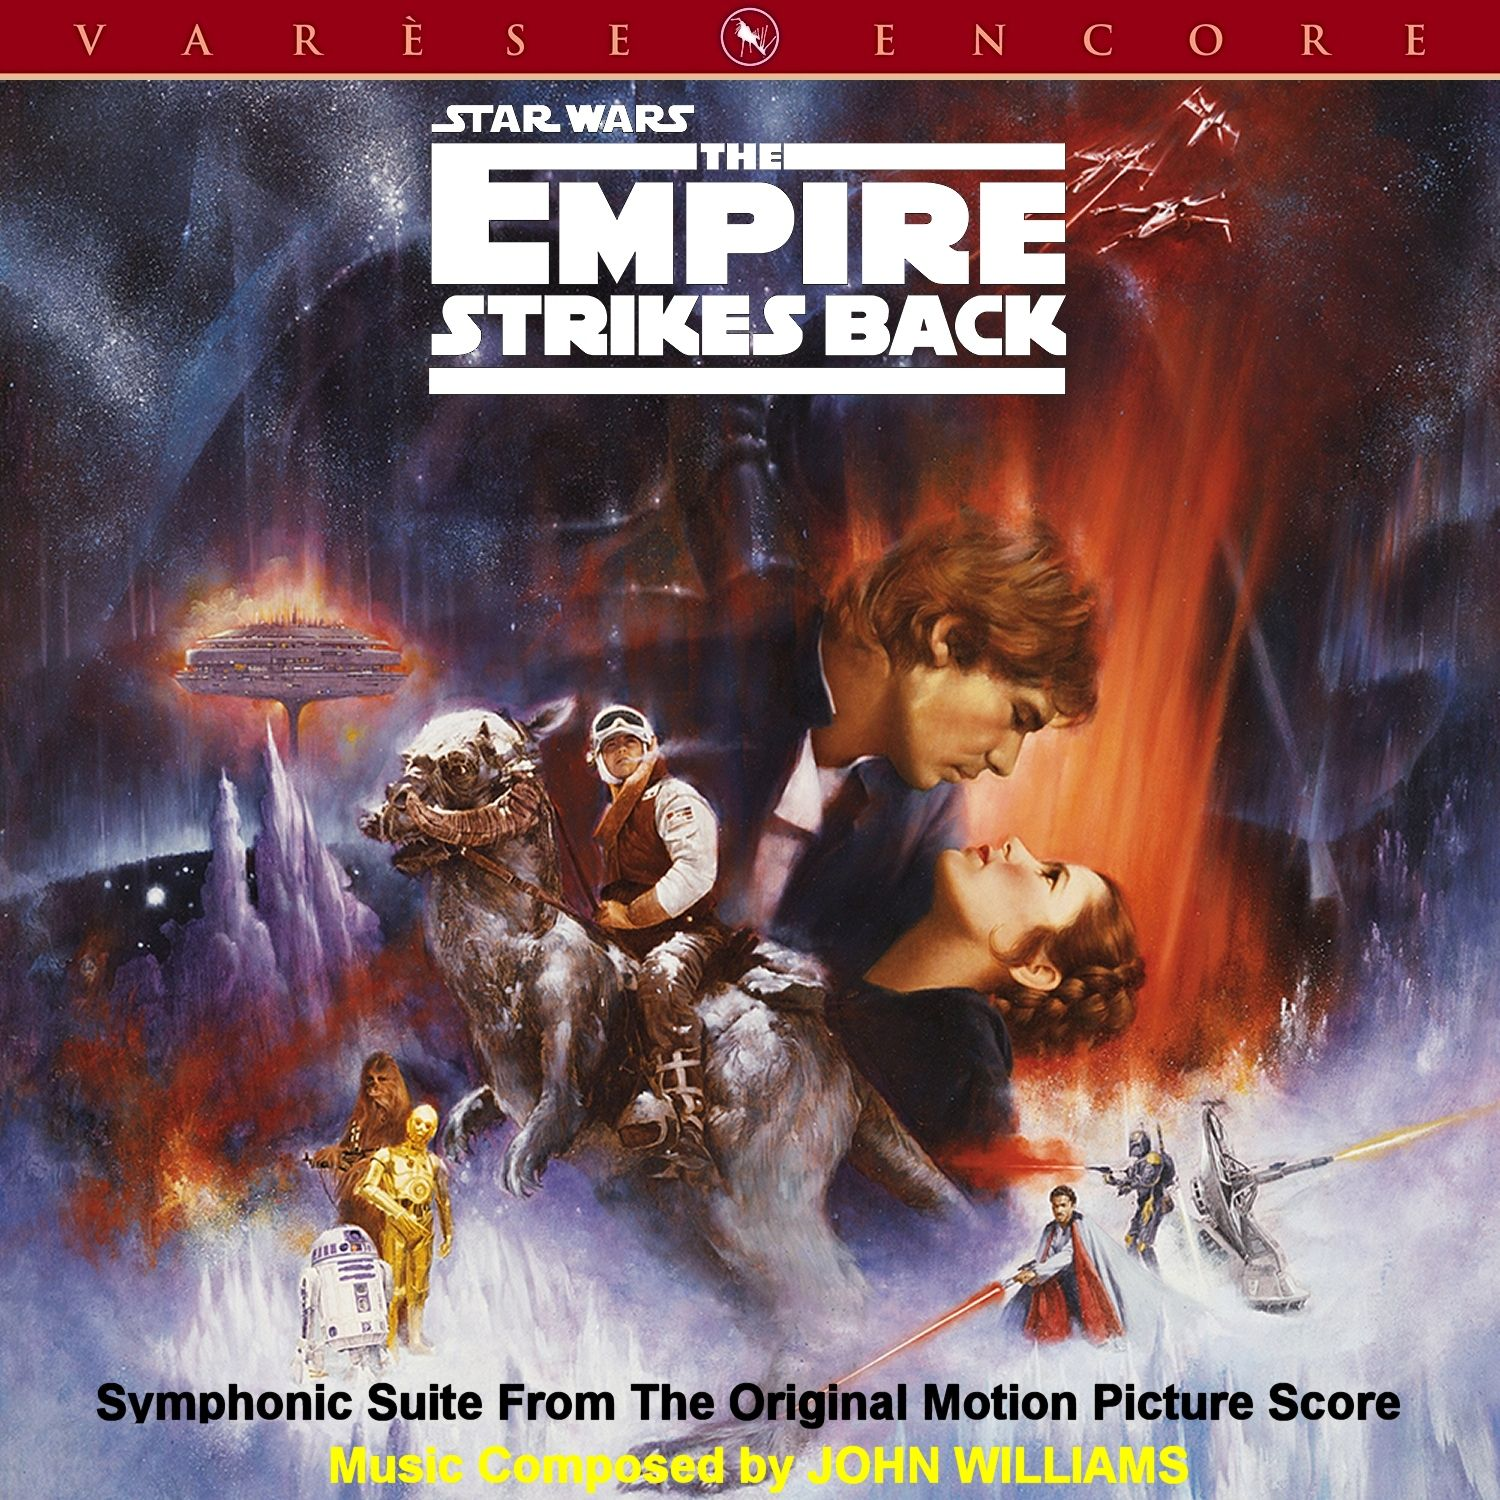 The Empire Strikes Back Movie posters, The empire